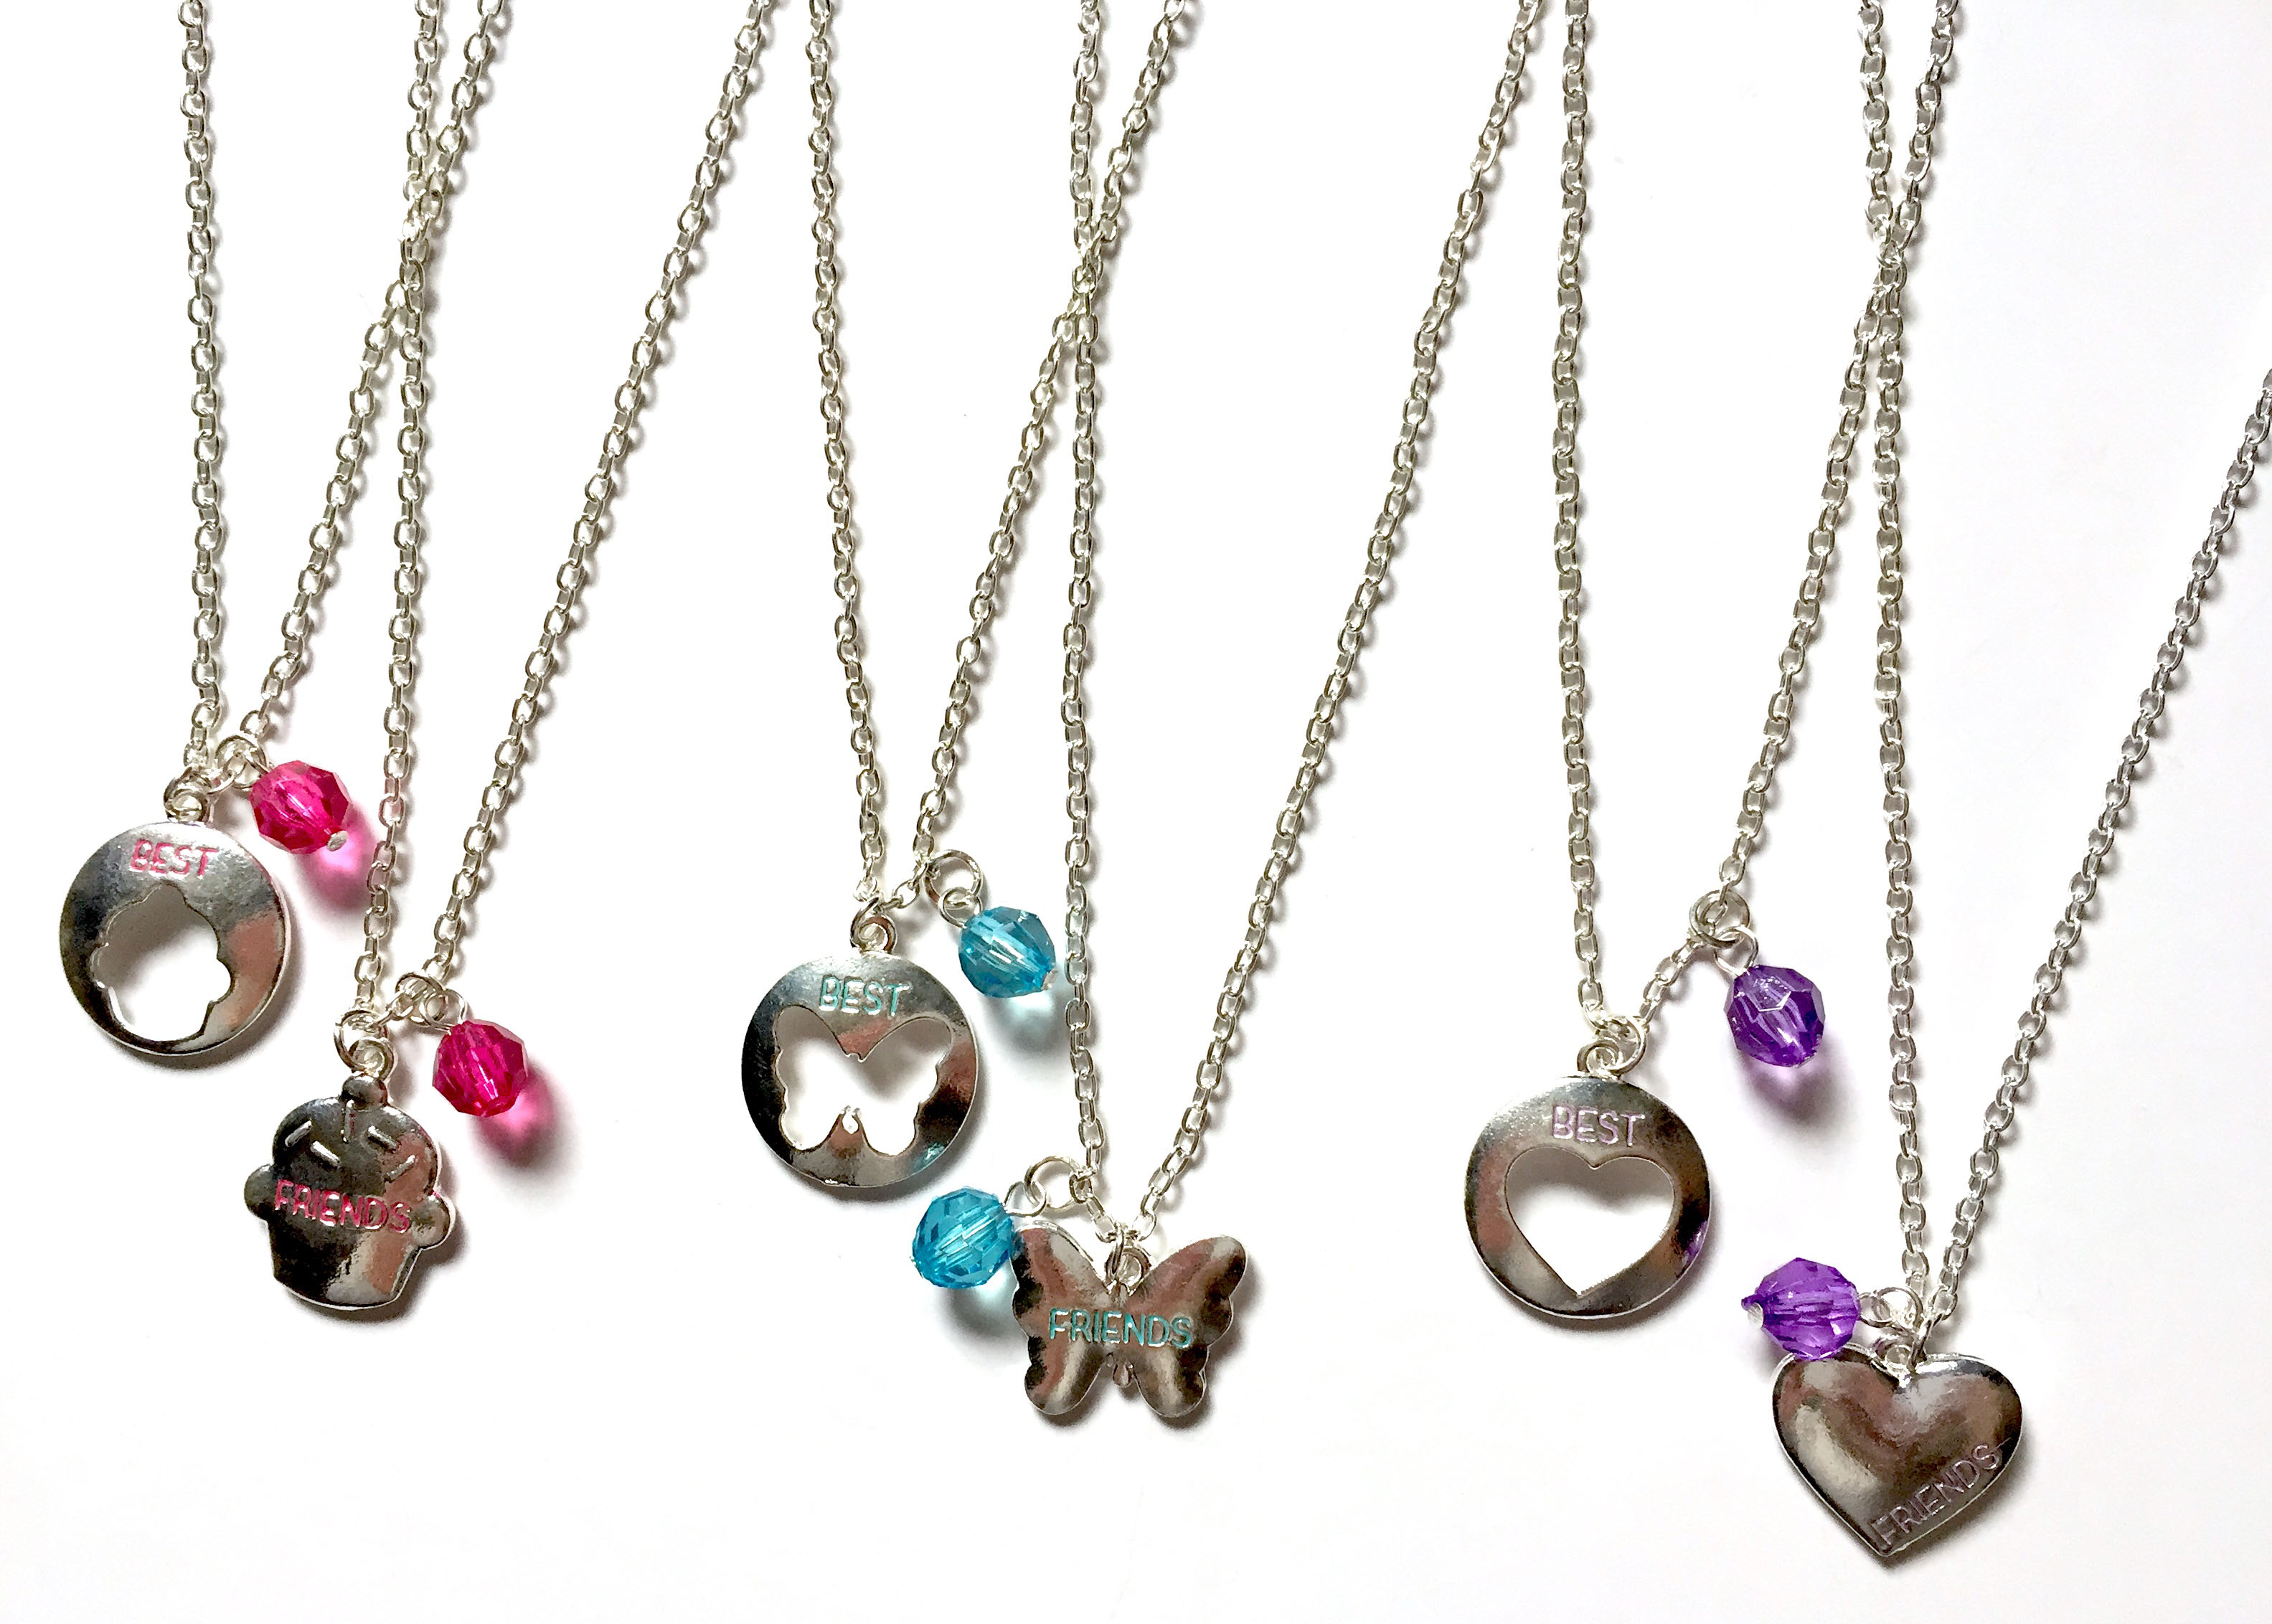 Cut-Out BF Necklaces